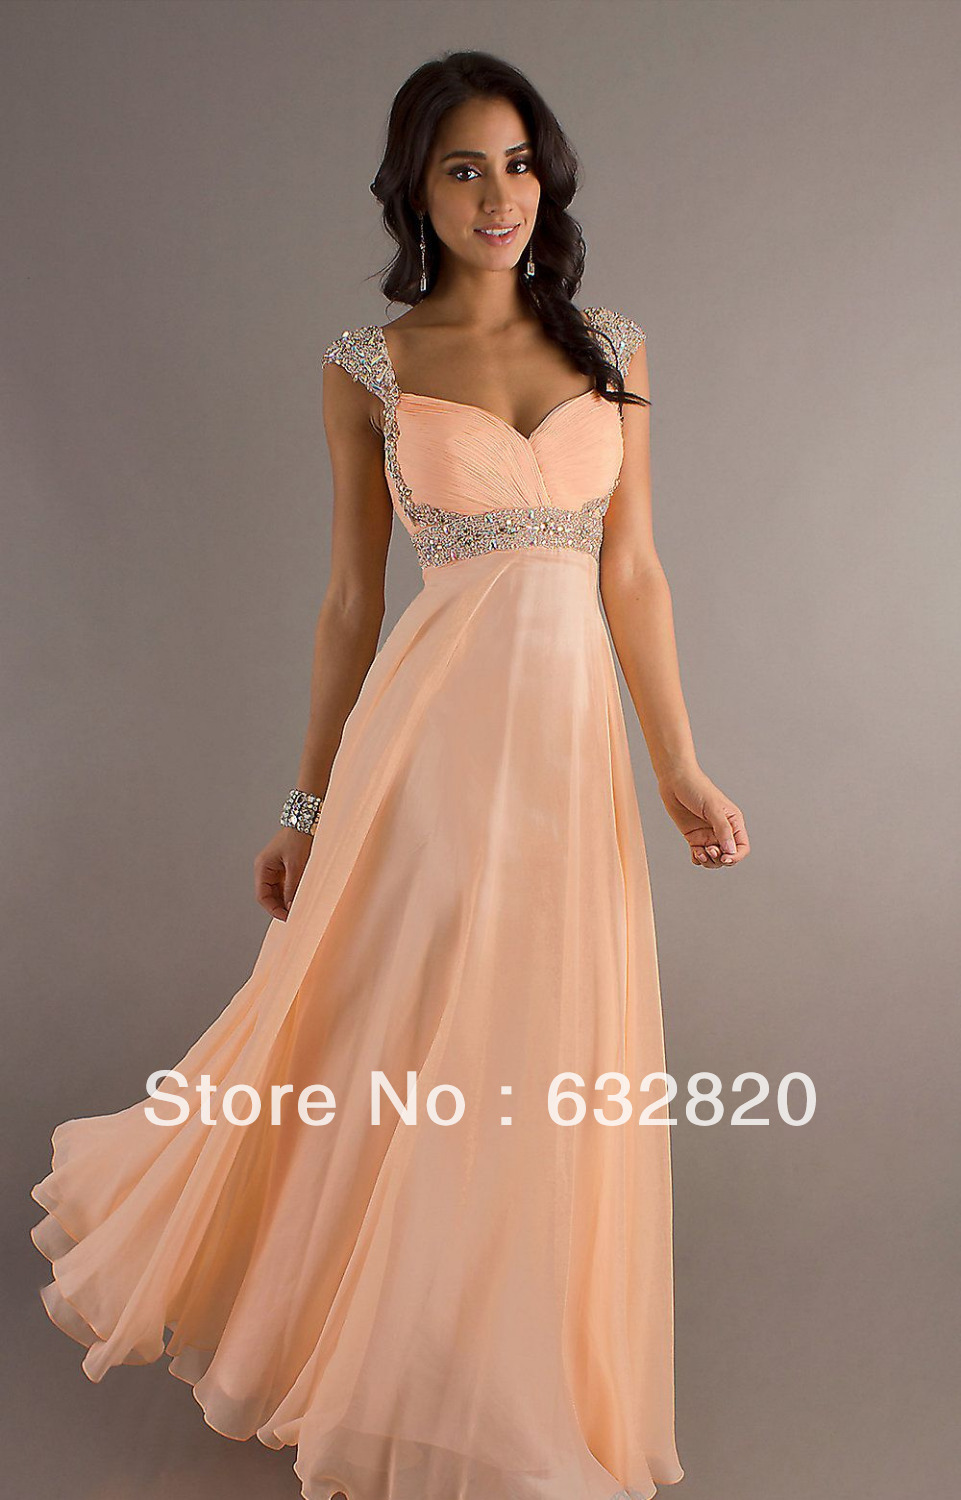 Cheap beaded custom made ruched free shipping wholesale cap sleeve peach evening gowns YE114-in Evening Dresses from Apparel & Accessories on Aliexpress.com